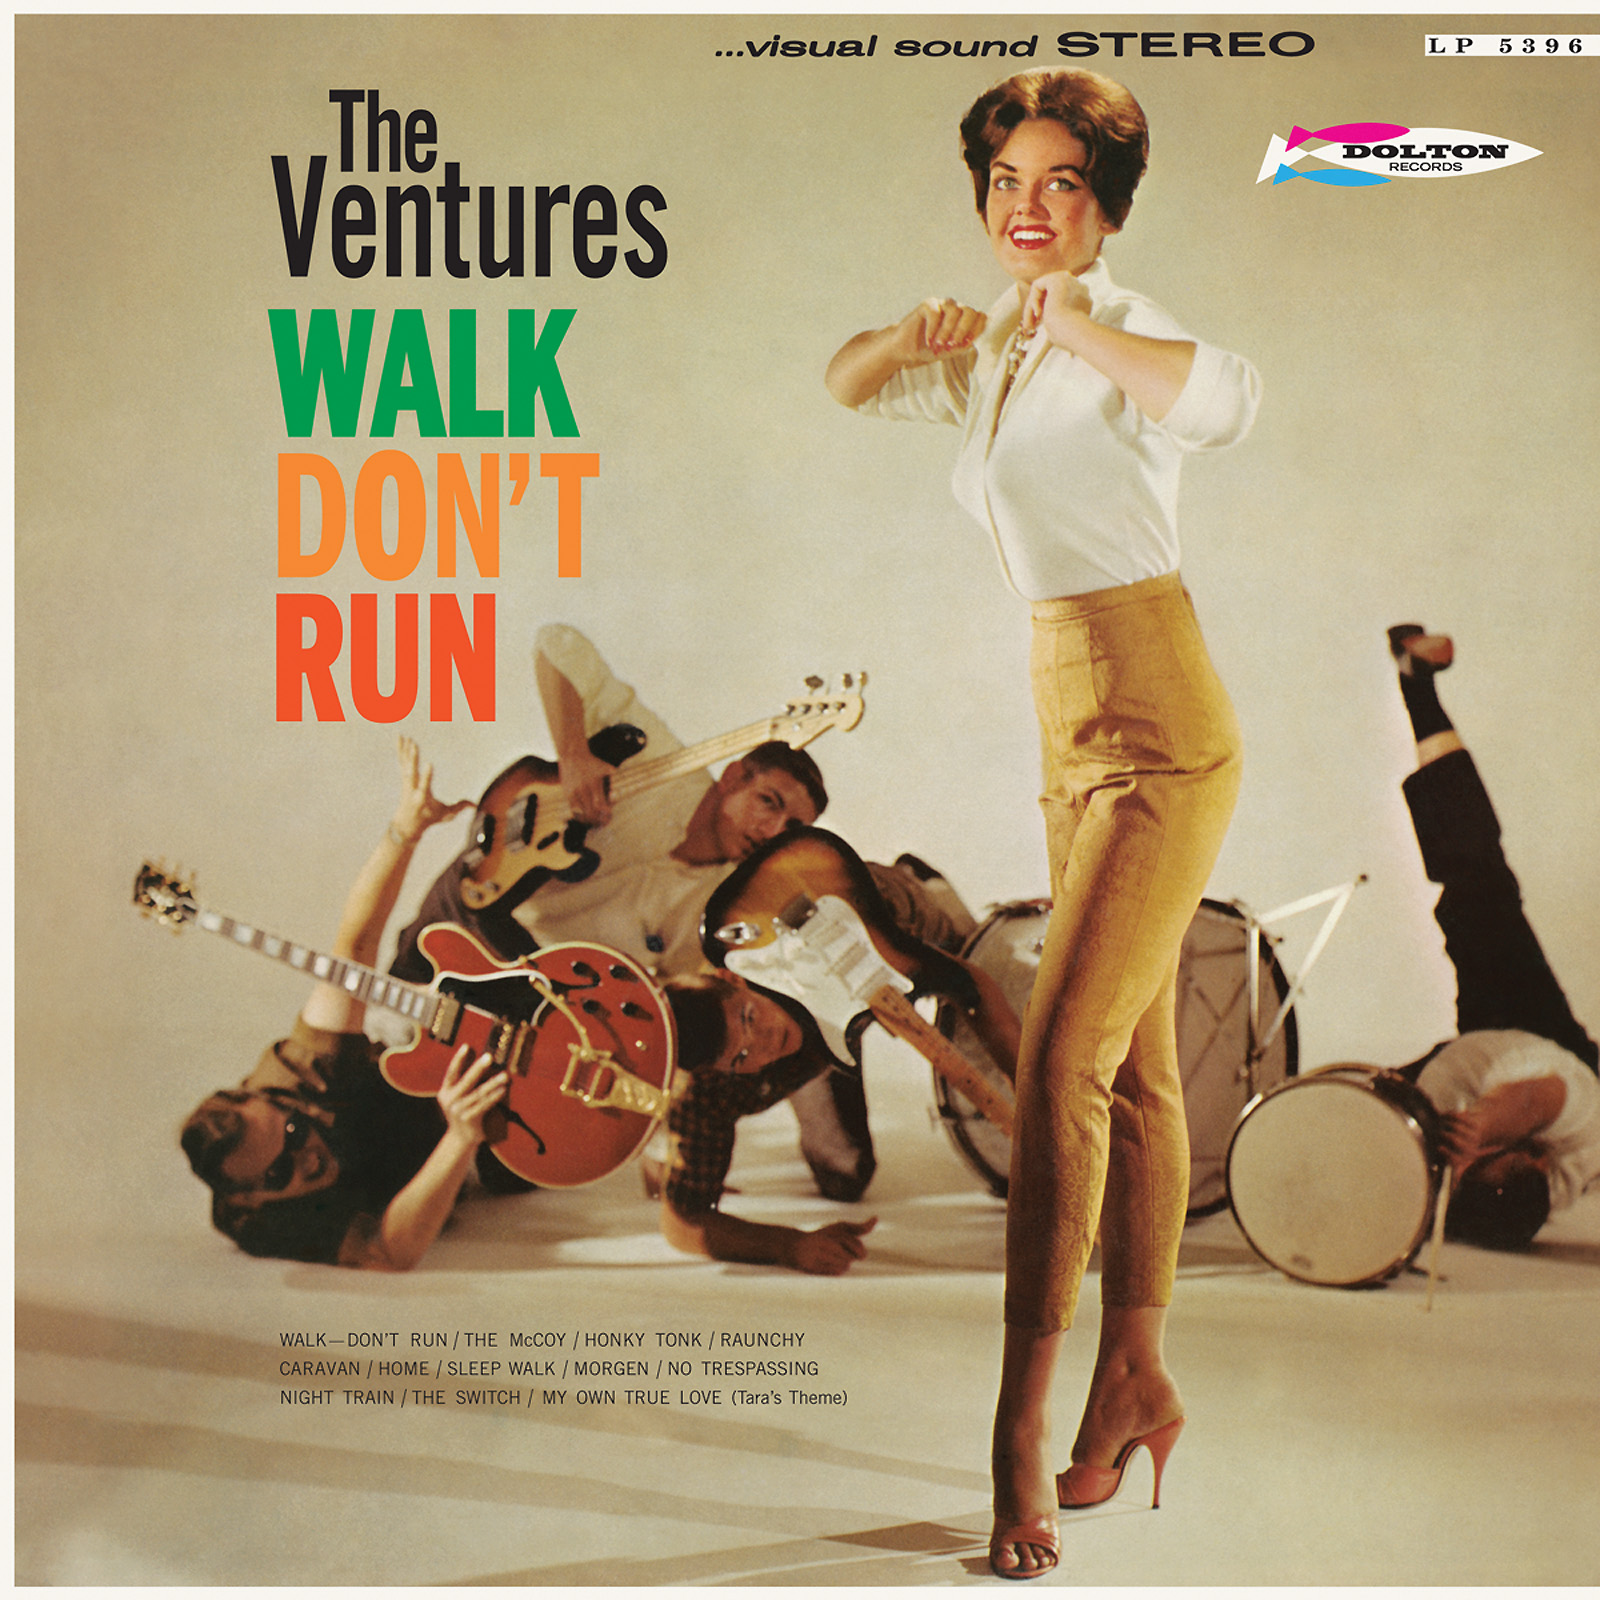 Ventures, The - Walk, Dont Run LIMITED EDITION Colored Vinyl LP